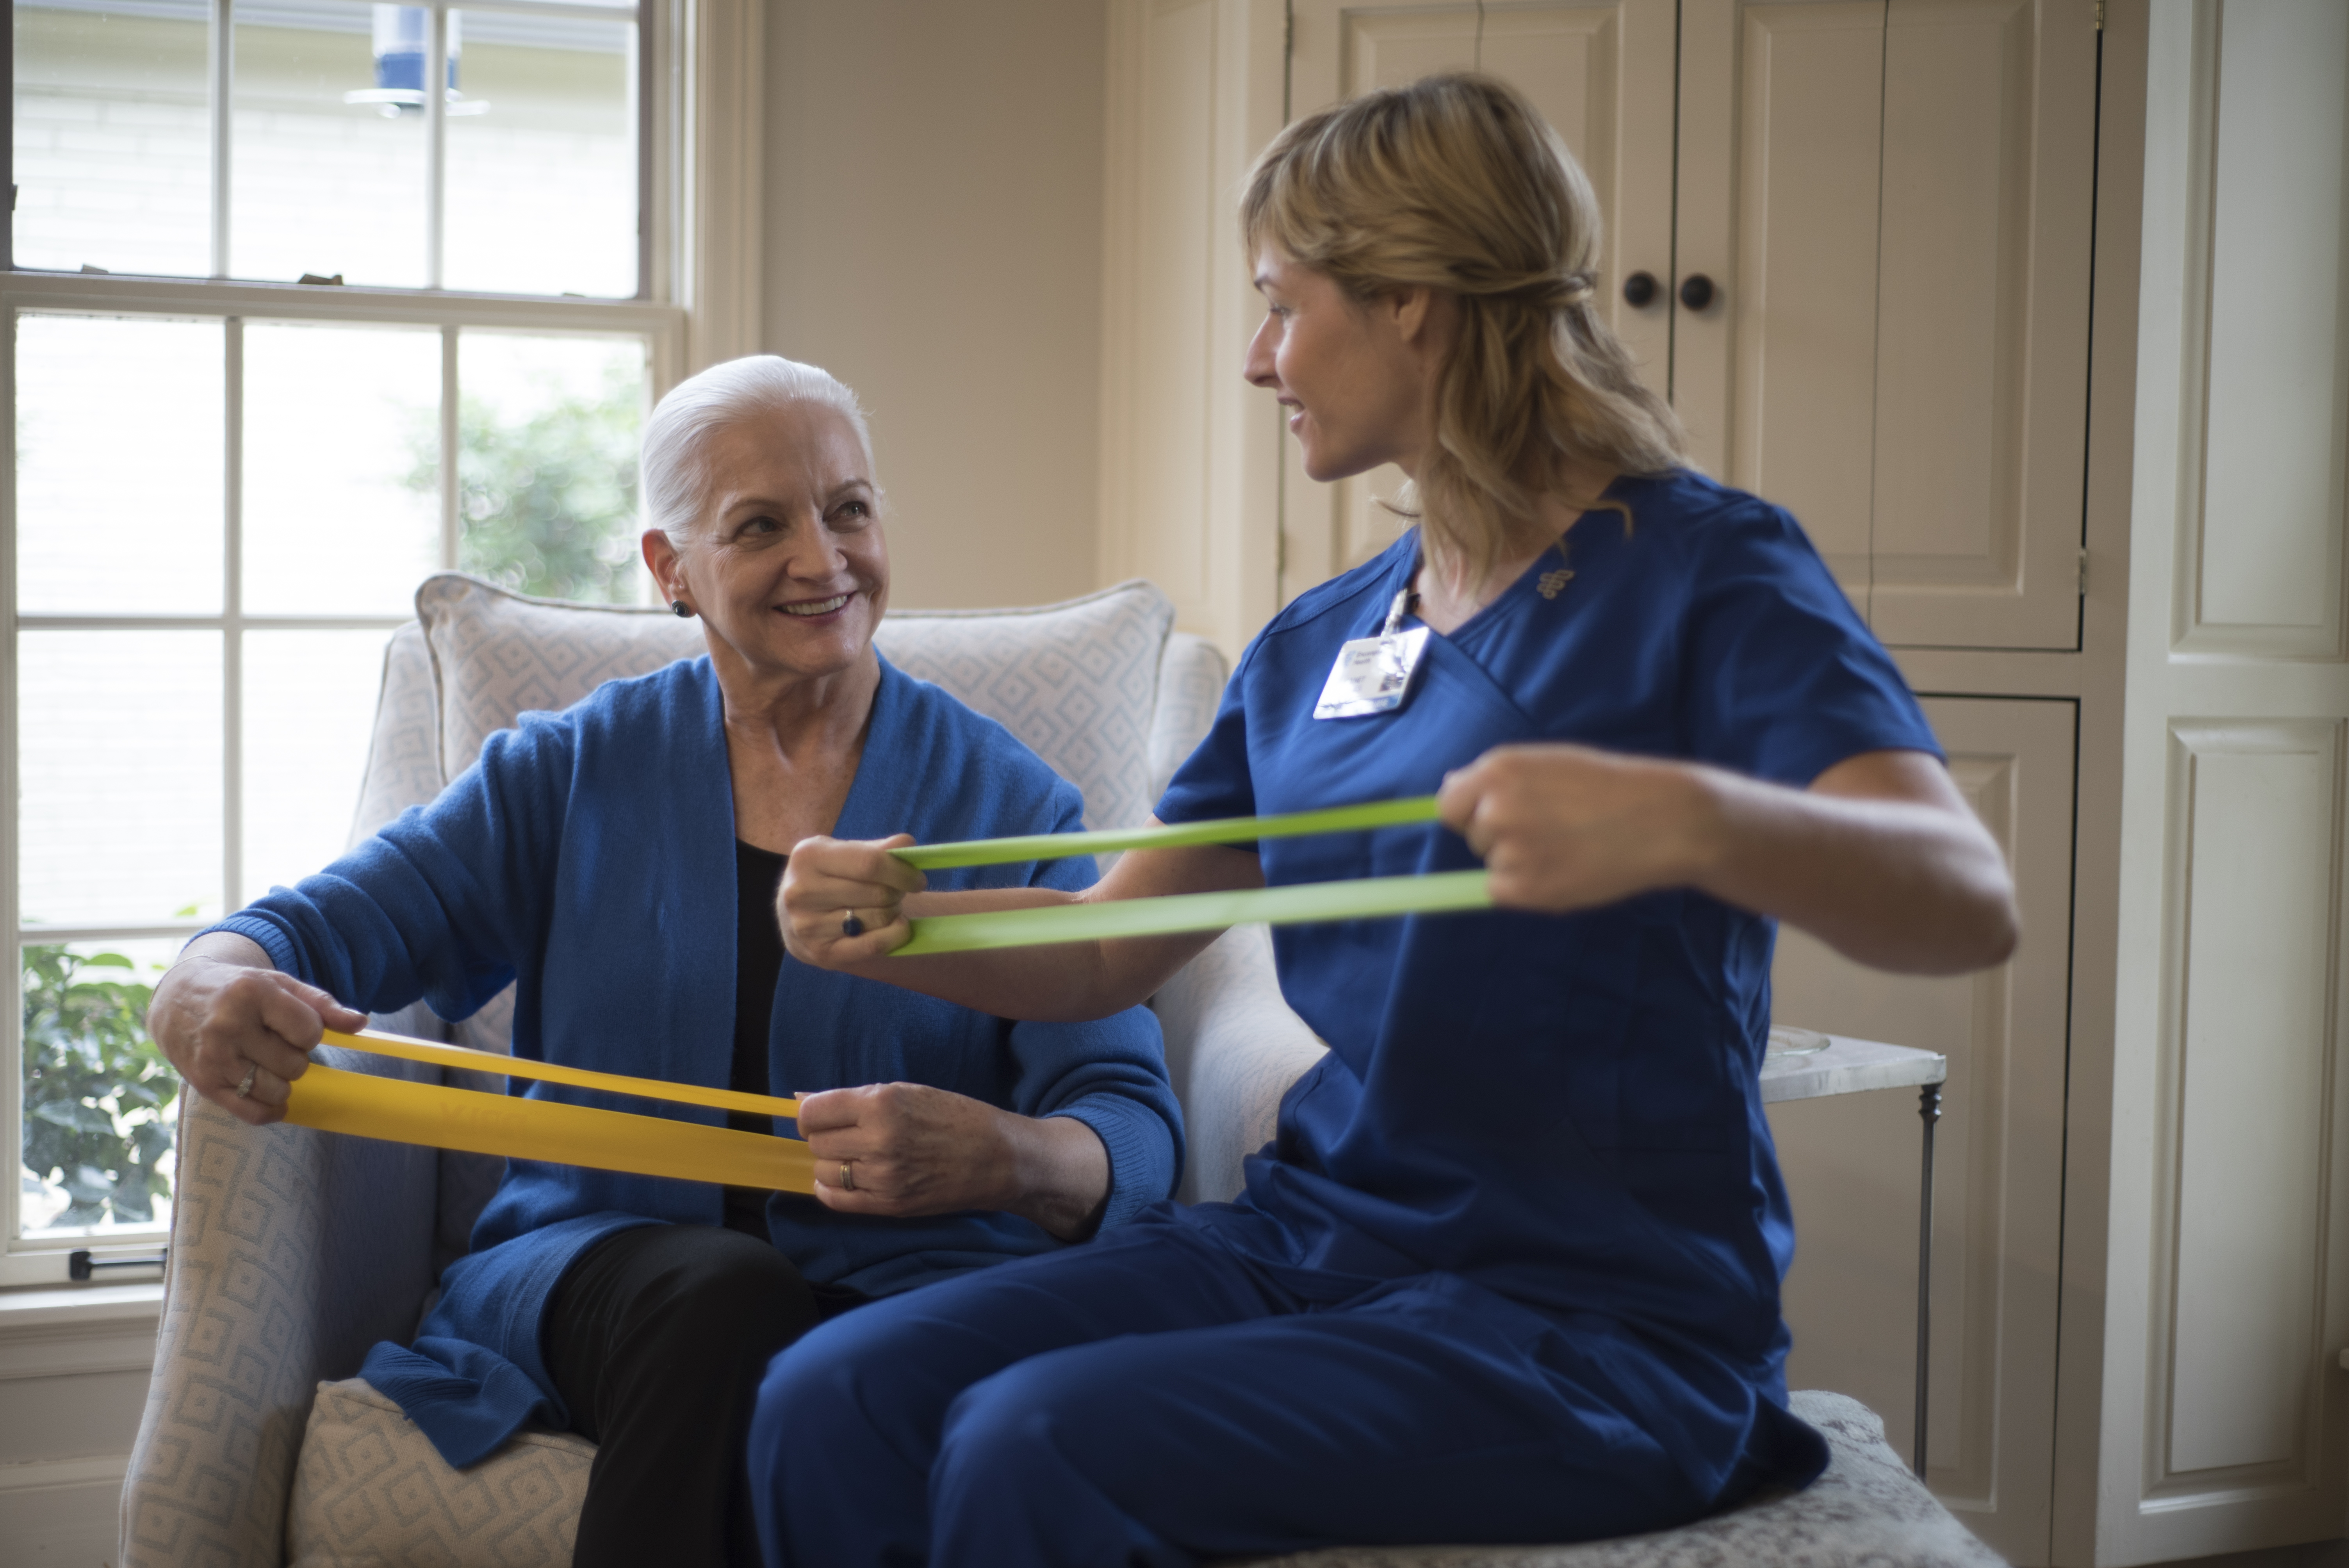 A therapist and a female patient practice stretching bands